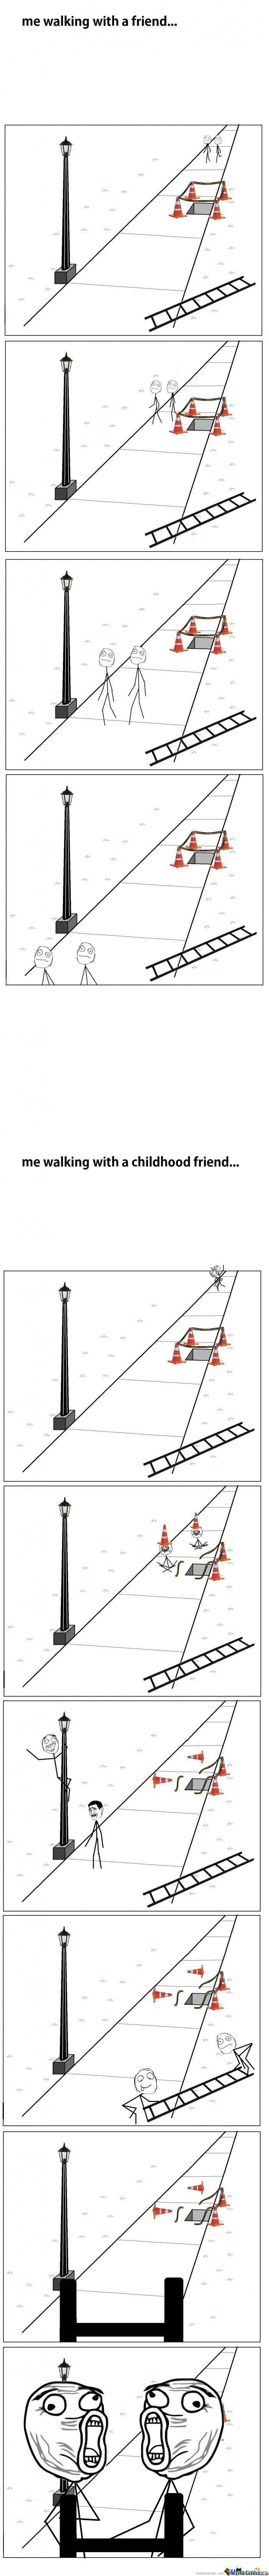 [RMX] Difference Between Friends And Friends From Childhood !!